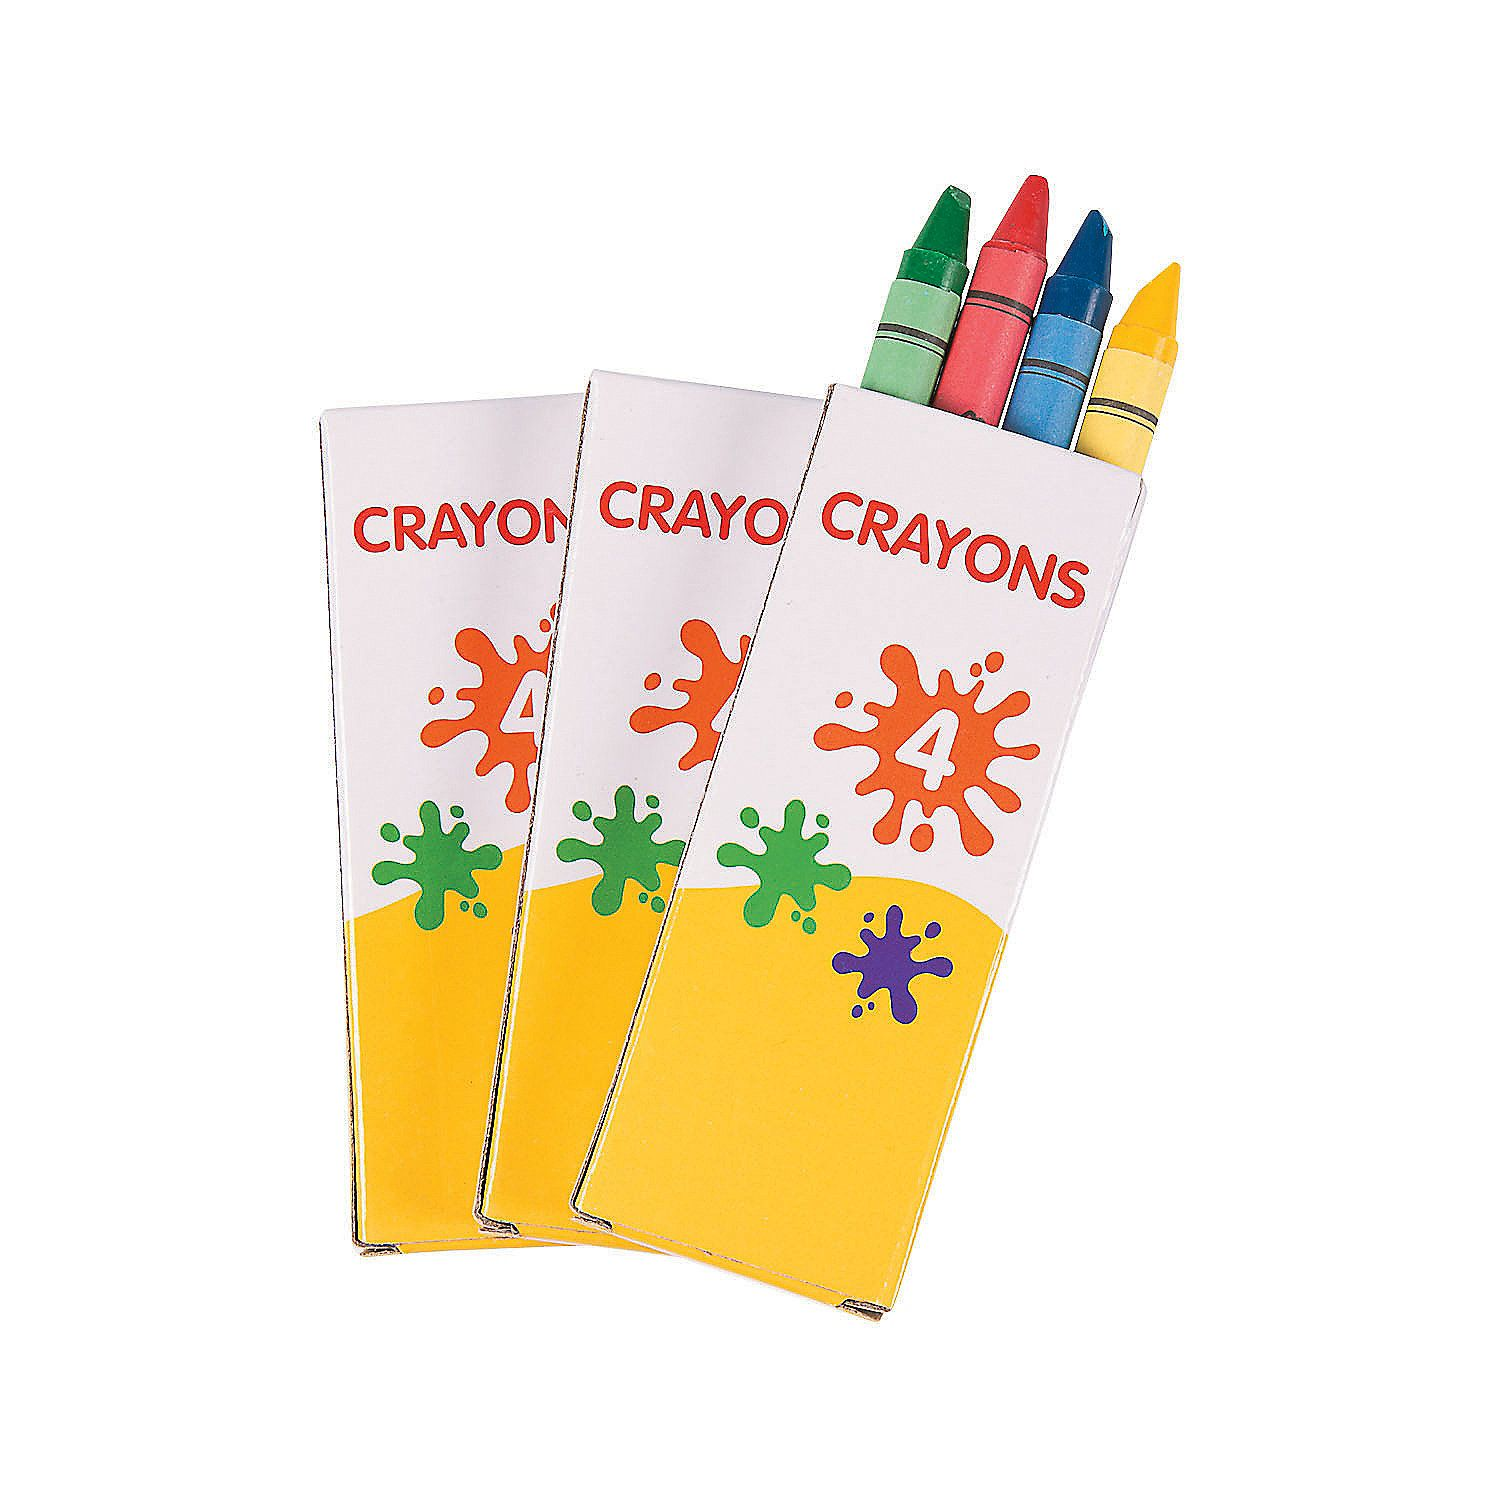 4 Color Crayons 12 Boxes Orientaltrading